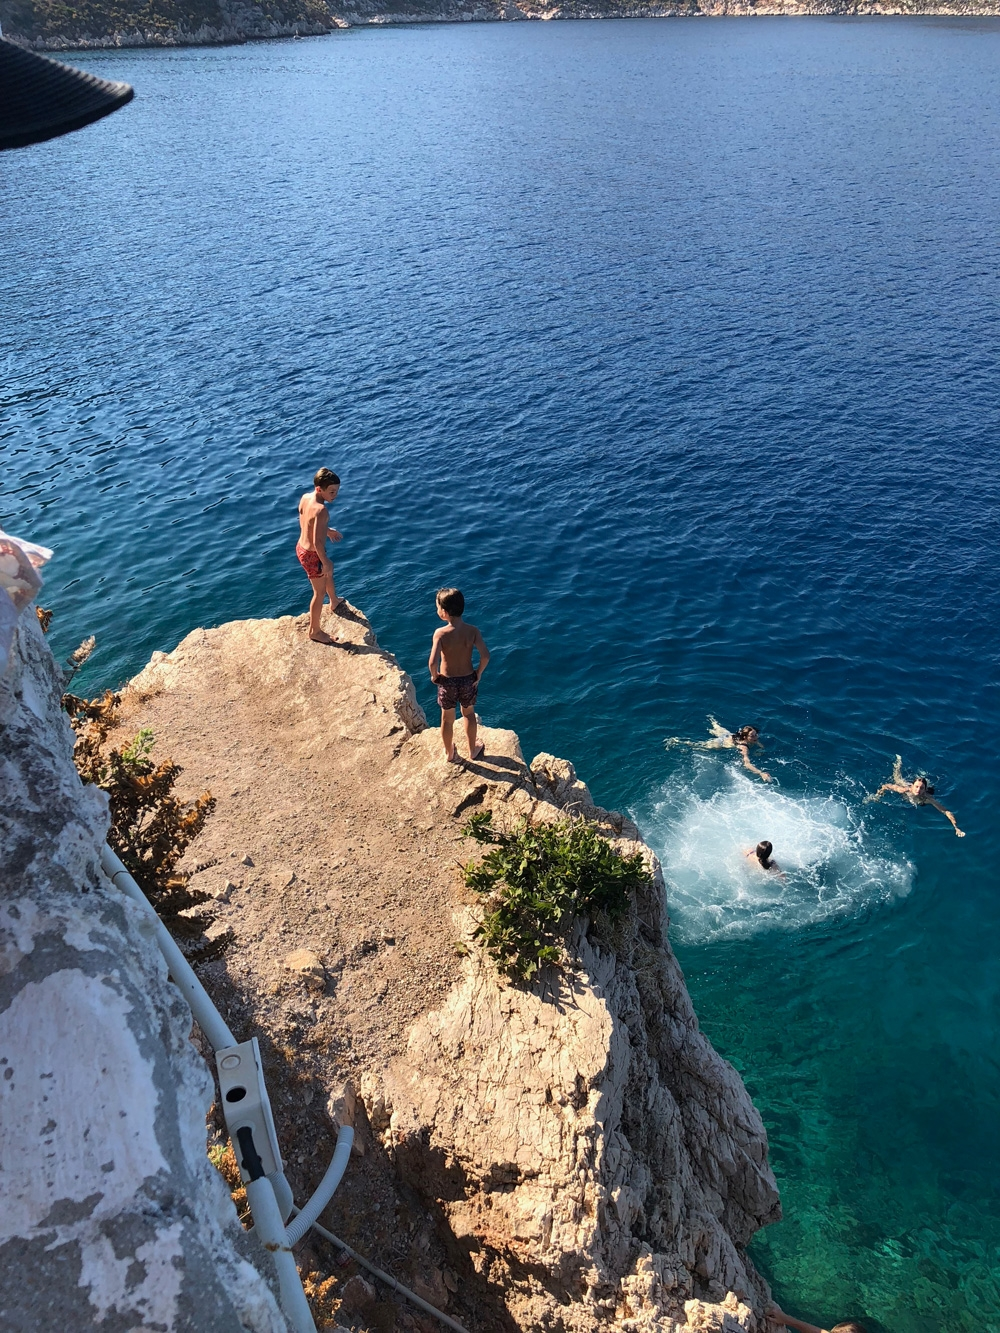 Children enjoying the sunshine and cliff diving into the deep blue ocean